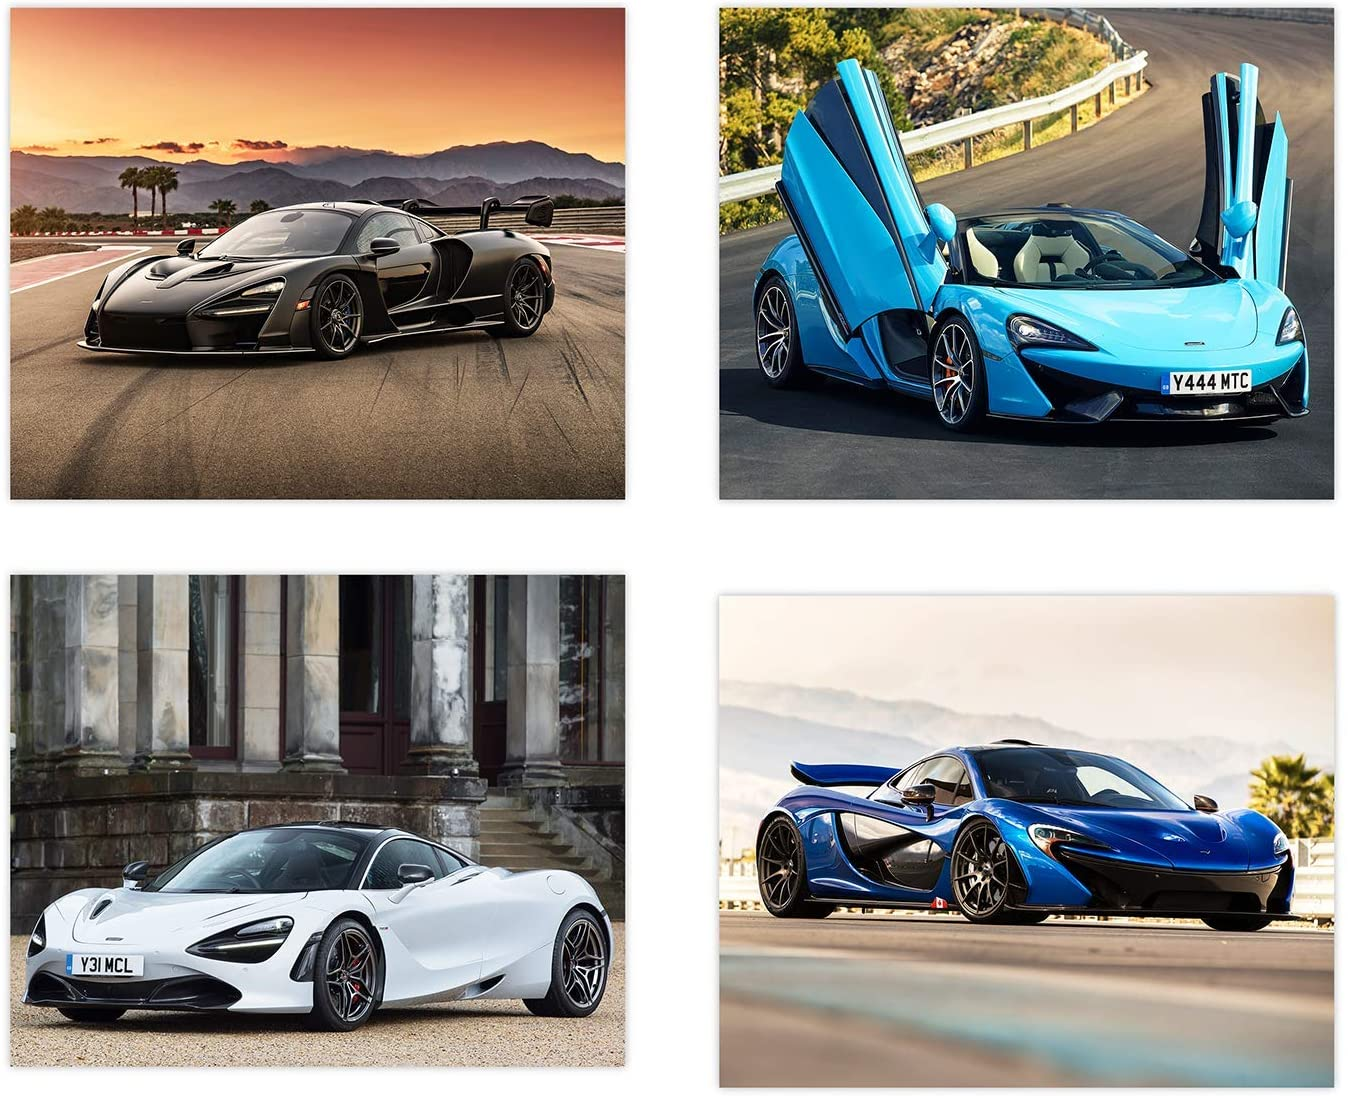 Mclaren Poster | Set of Four 8x10 Sports Car Wall Art | Senna | 720s | P1 | 570GT | Perfect Gift | Exotic Cars Poster